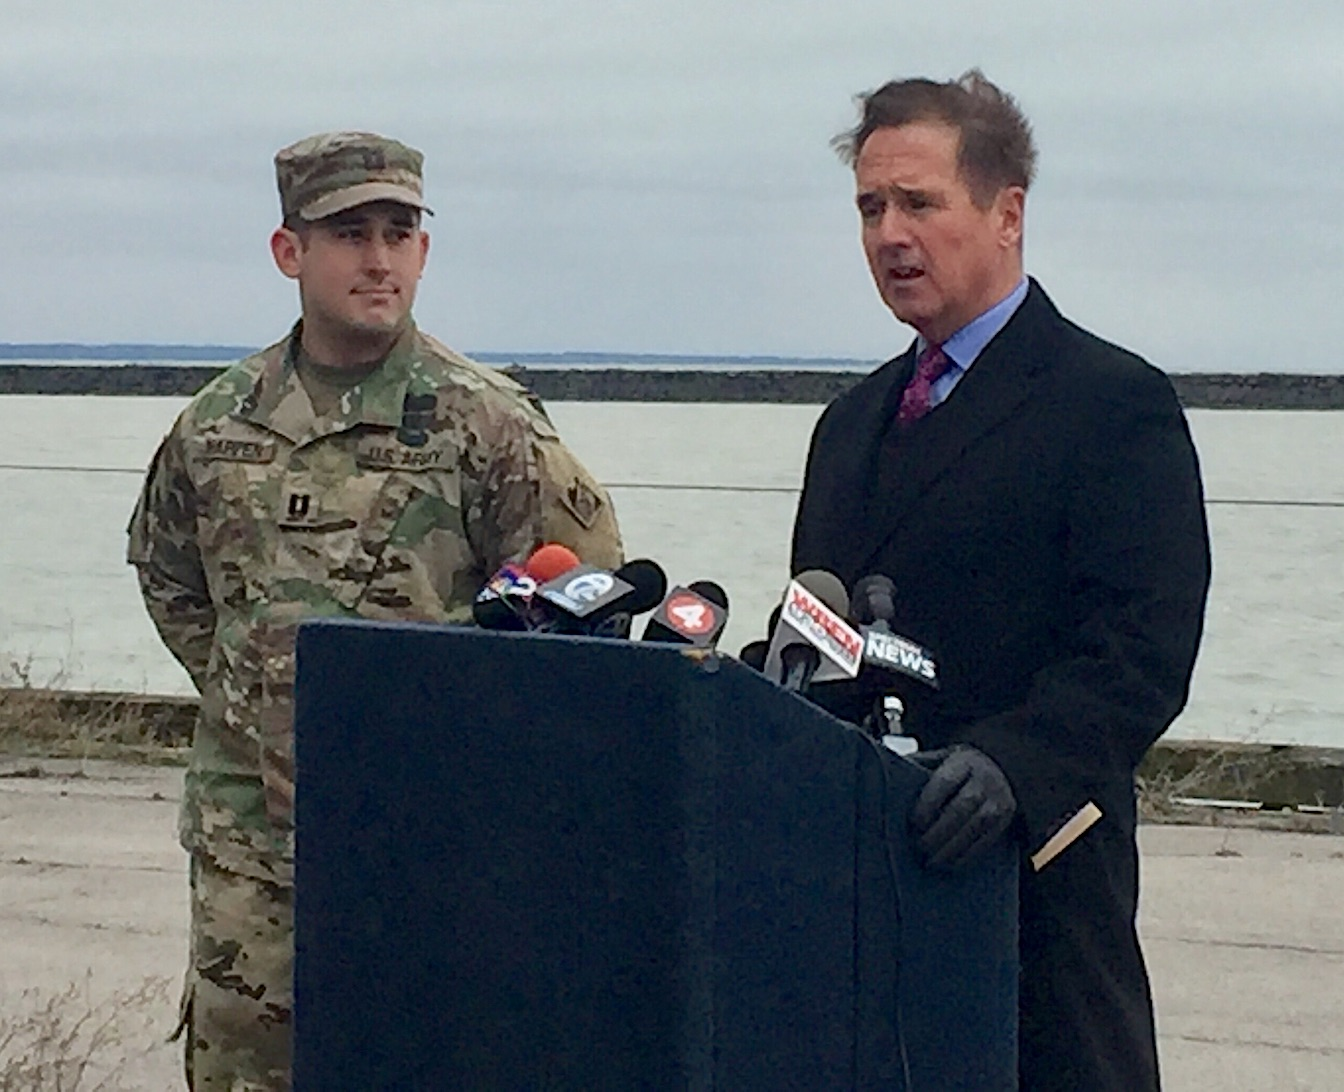 U.S. Army Corps of Engineers Buffalo District Capt. Henry Harpen with Congressman Brian Higgins.